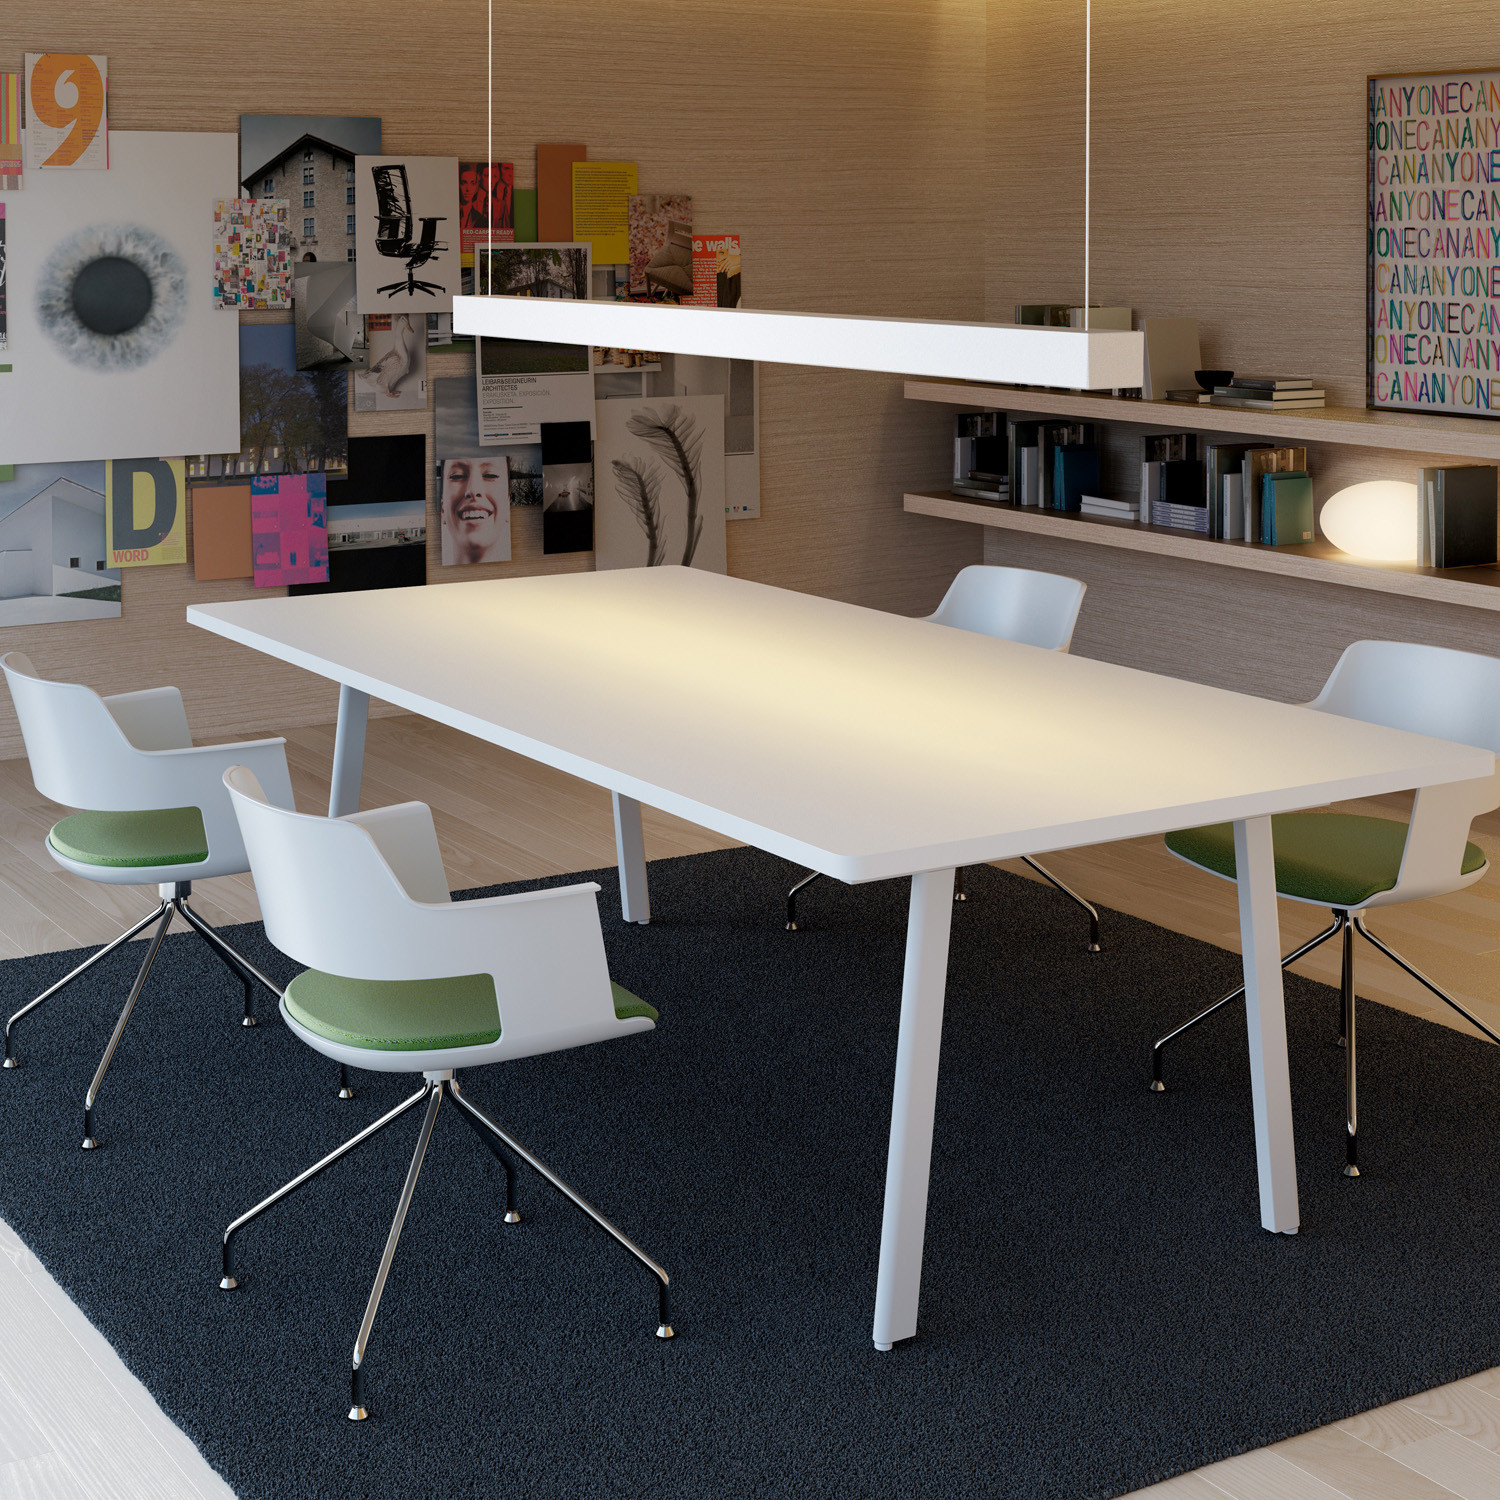 M10 meeting table office furniture apres furniture for Meeting table design 3d